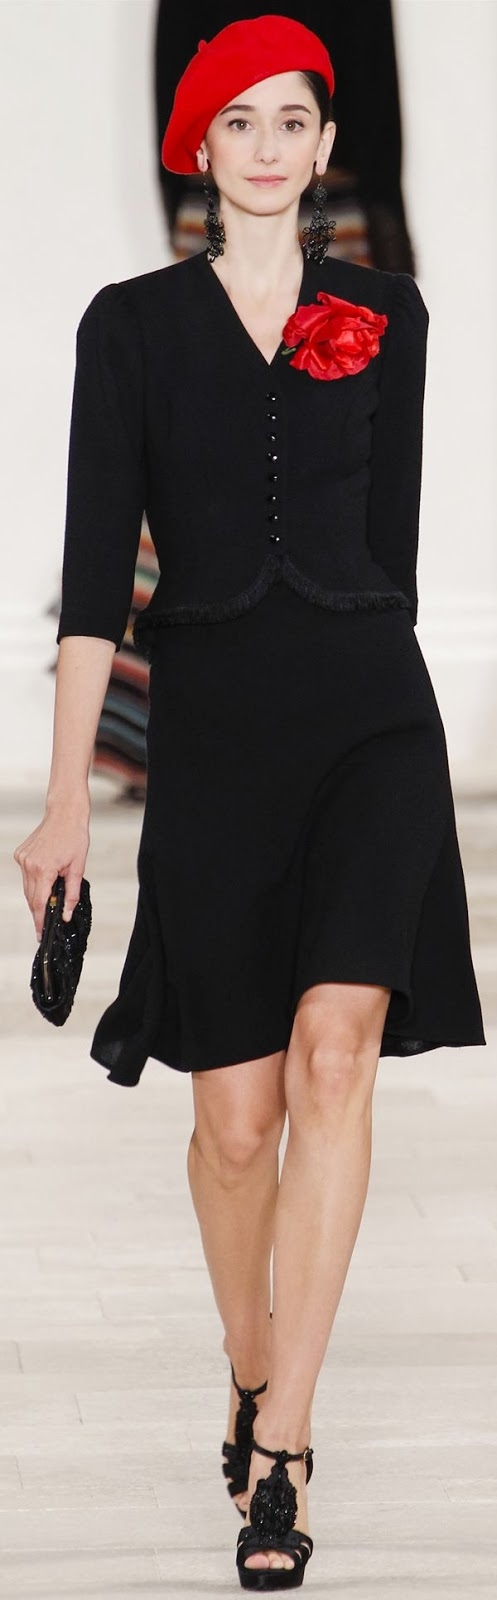 Ralph Lauren 2013 - Amazing black dress